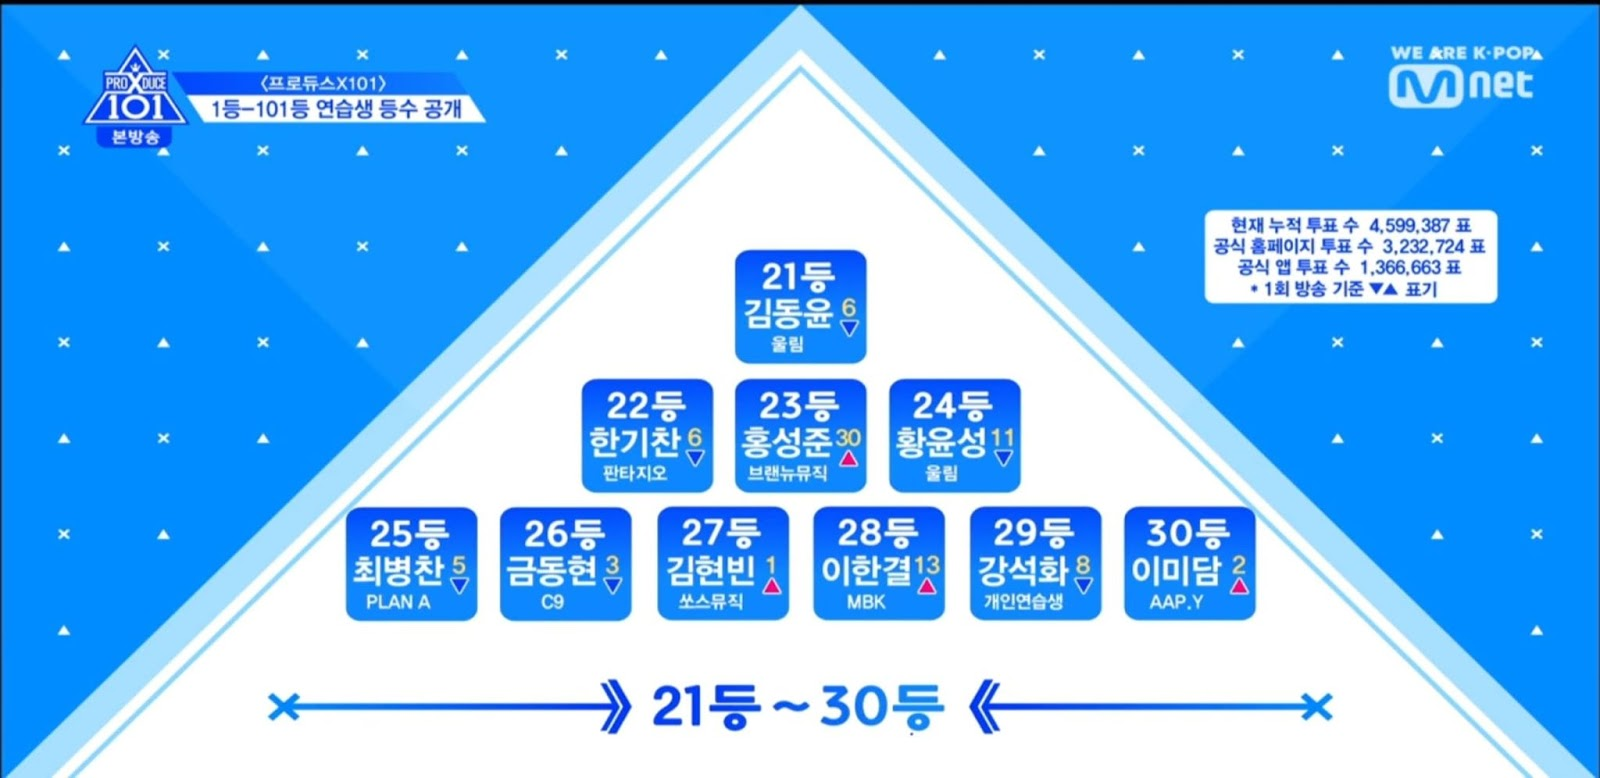 Here Are The TOP 30 Trainees After The Second Episode Of